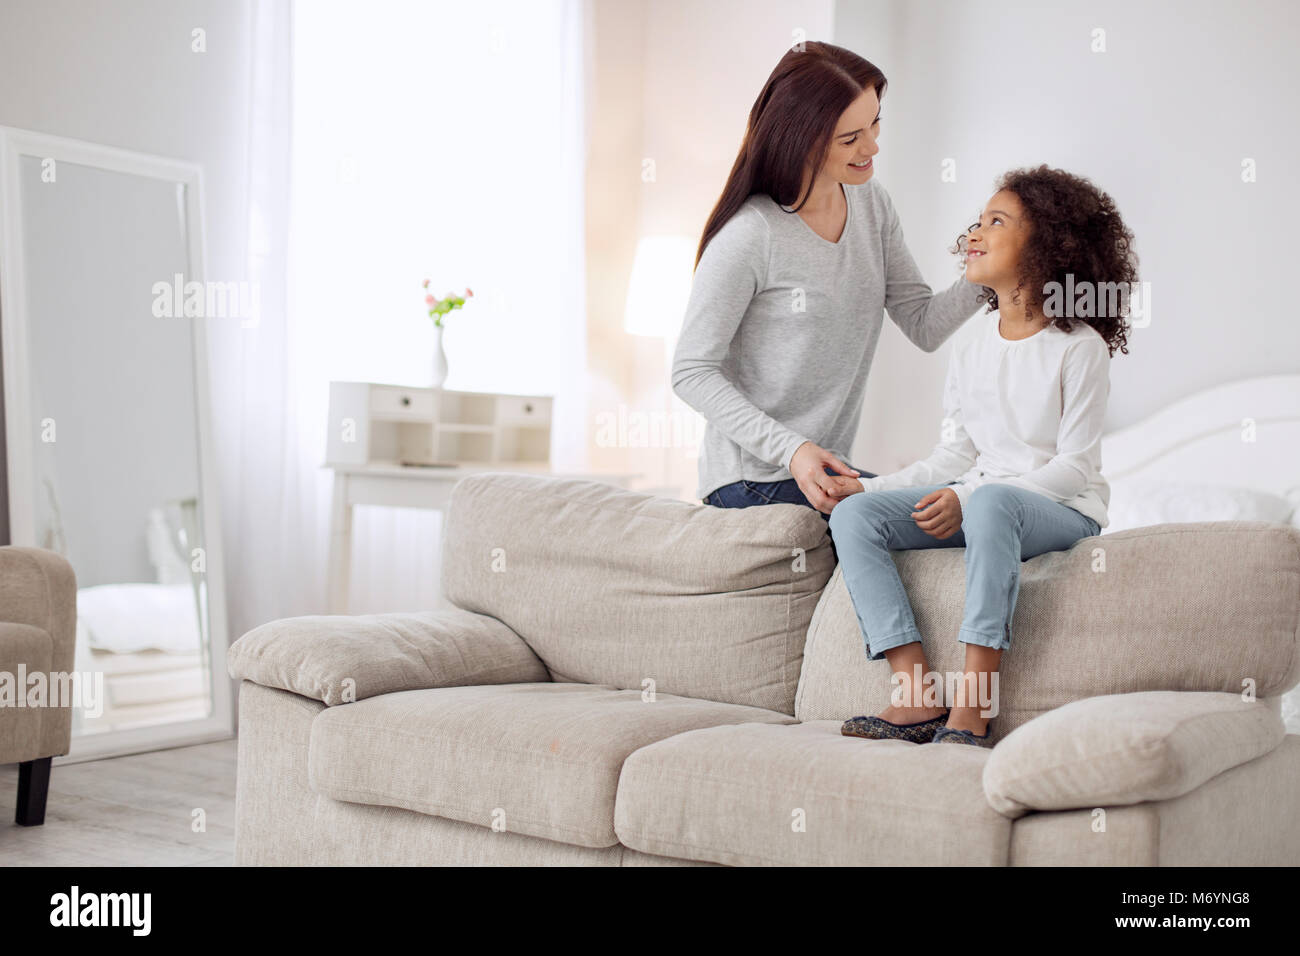 Happy mother caressing her daughter - Stock Image